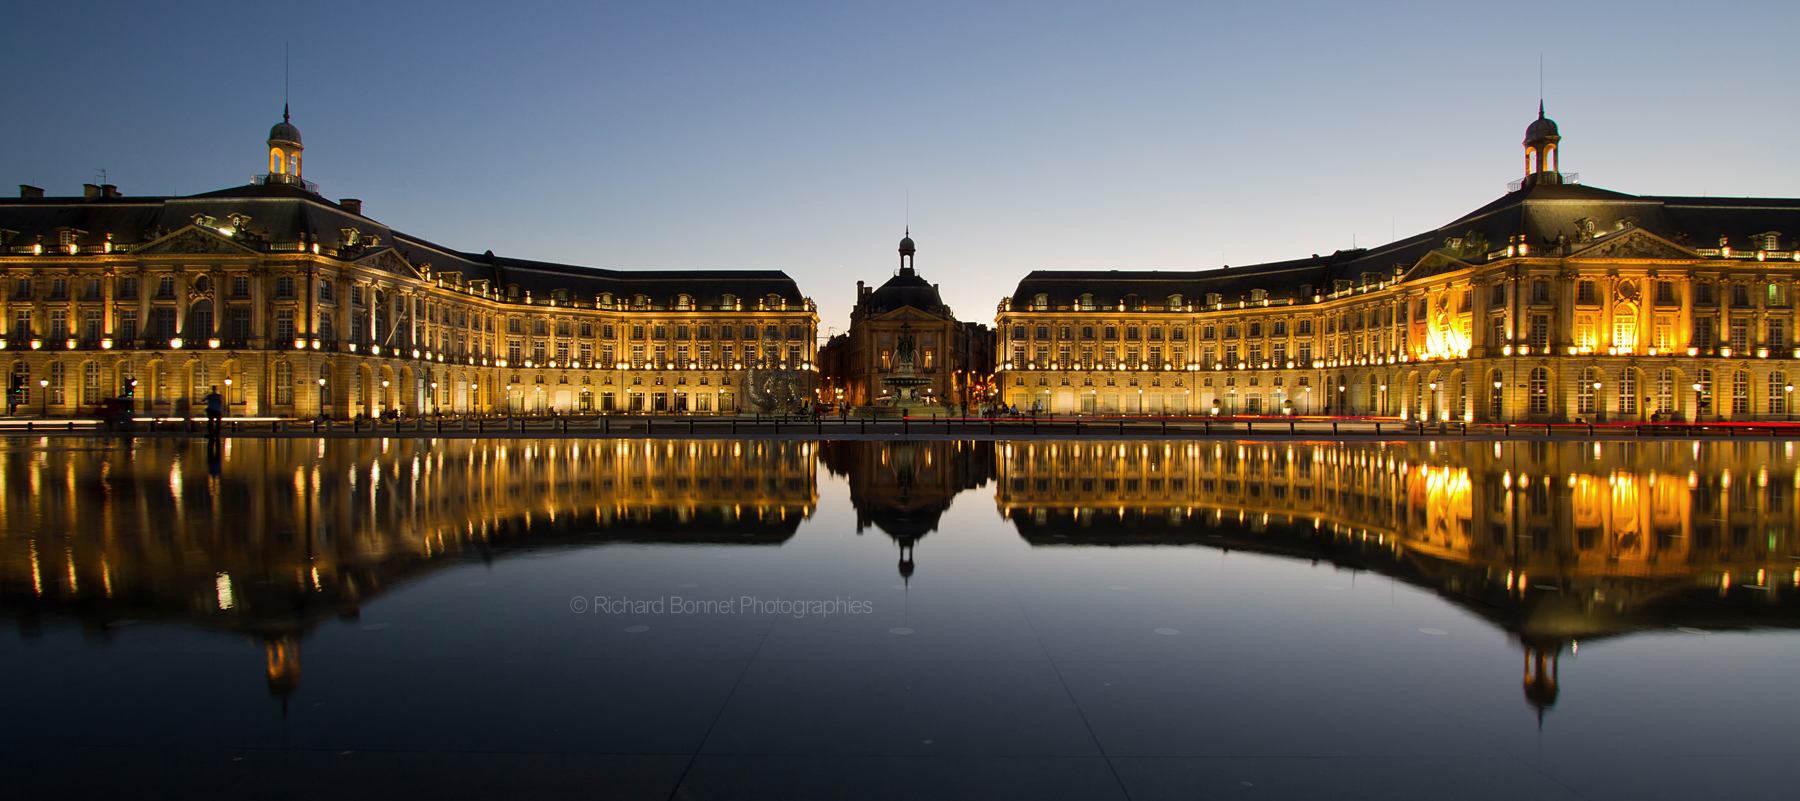 Mes 10 choses pr f r es bordeaux leamstramgram for Miroir d eau bordeaux